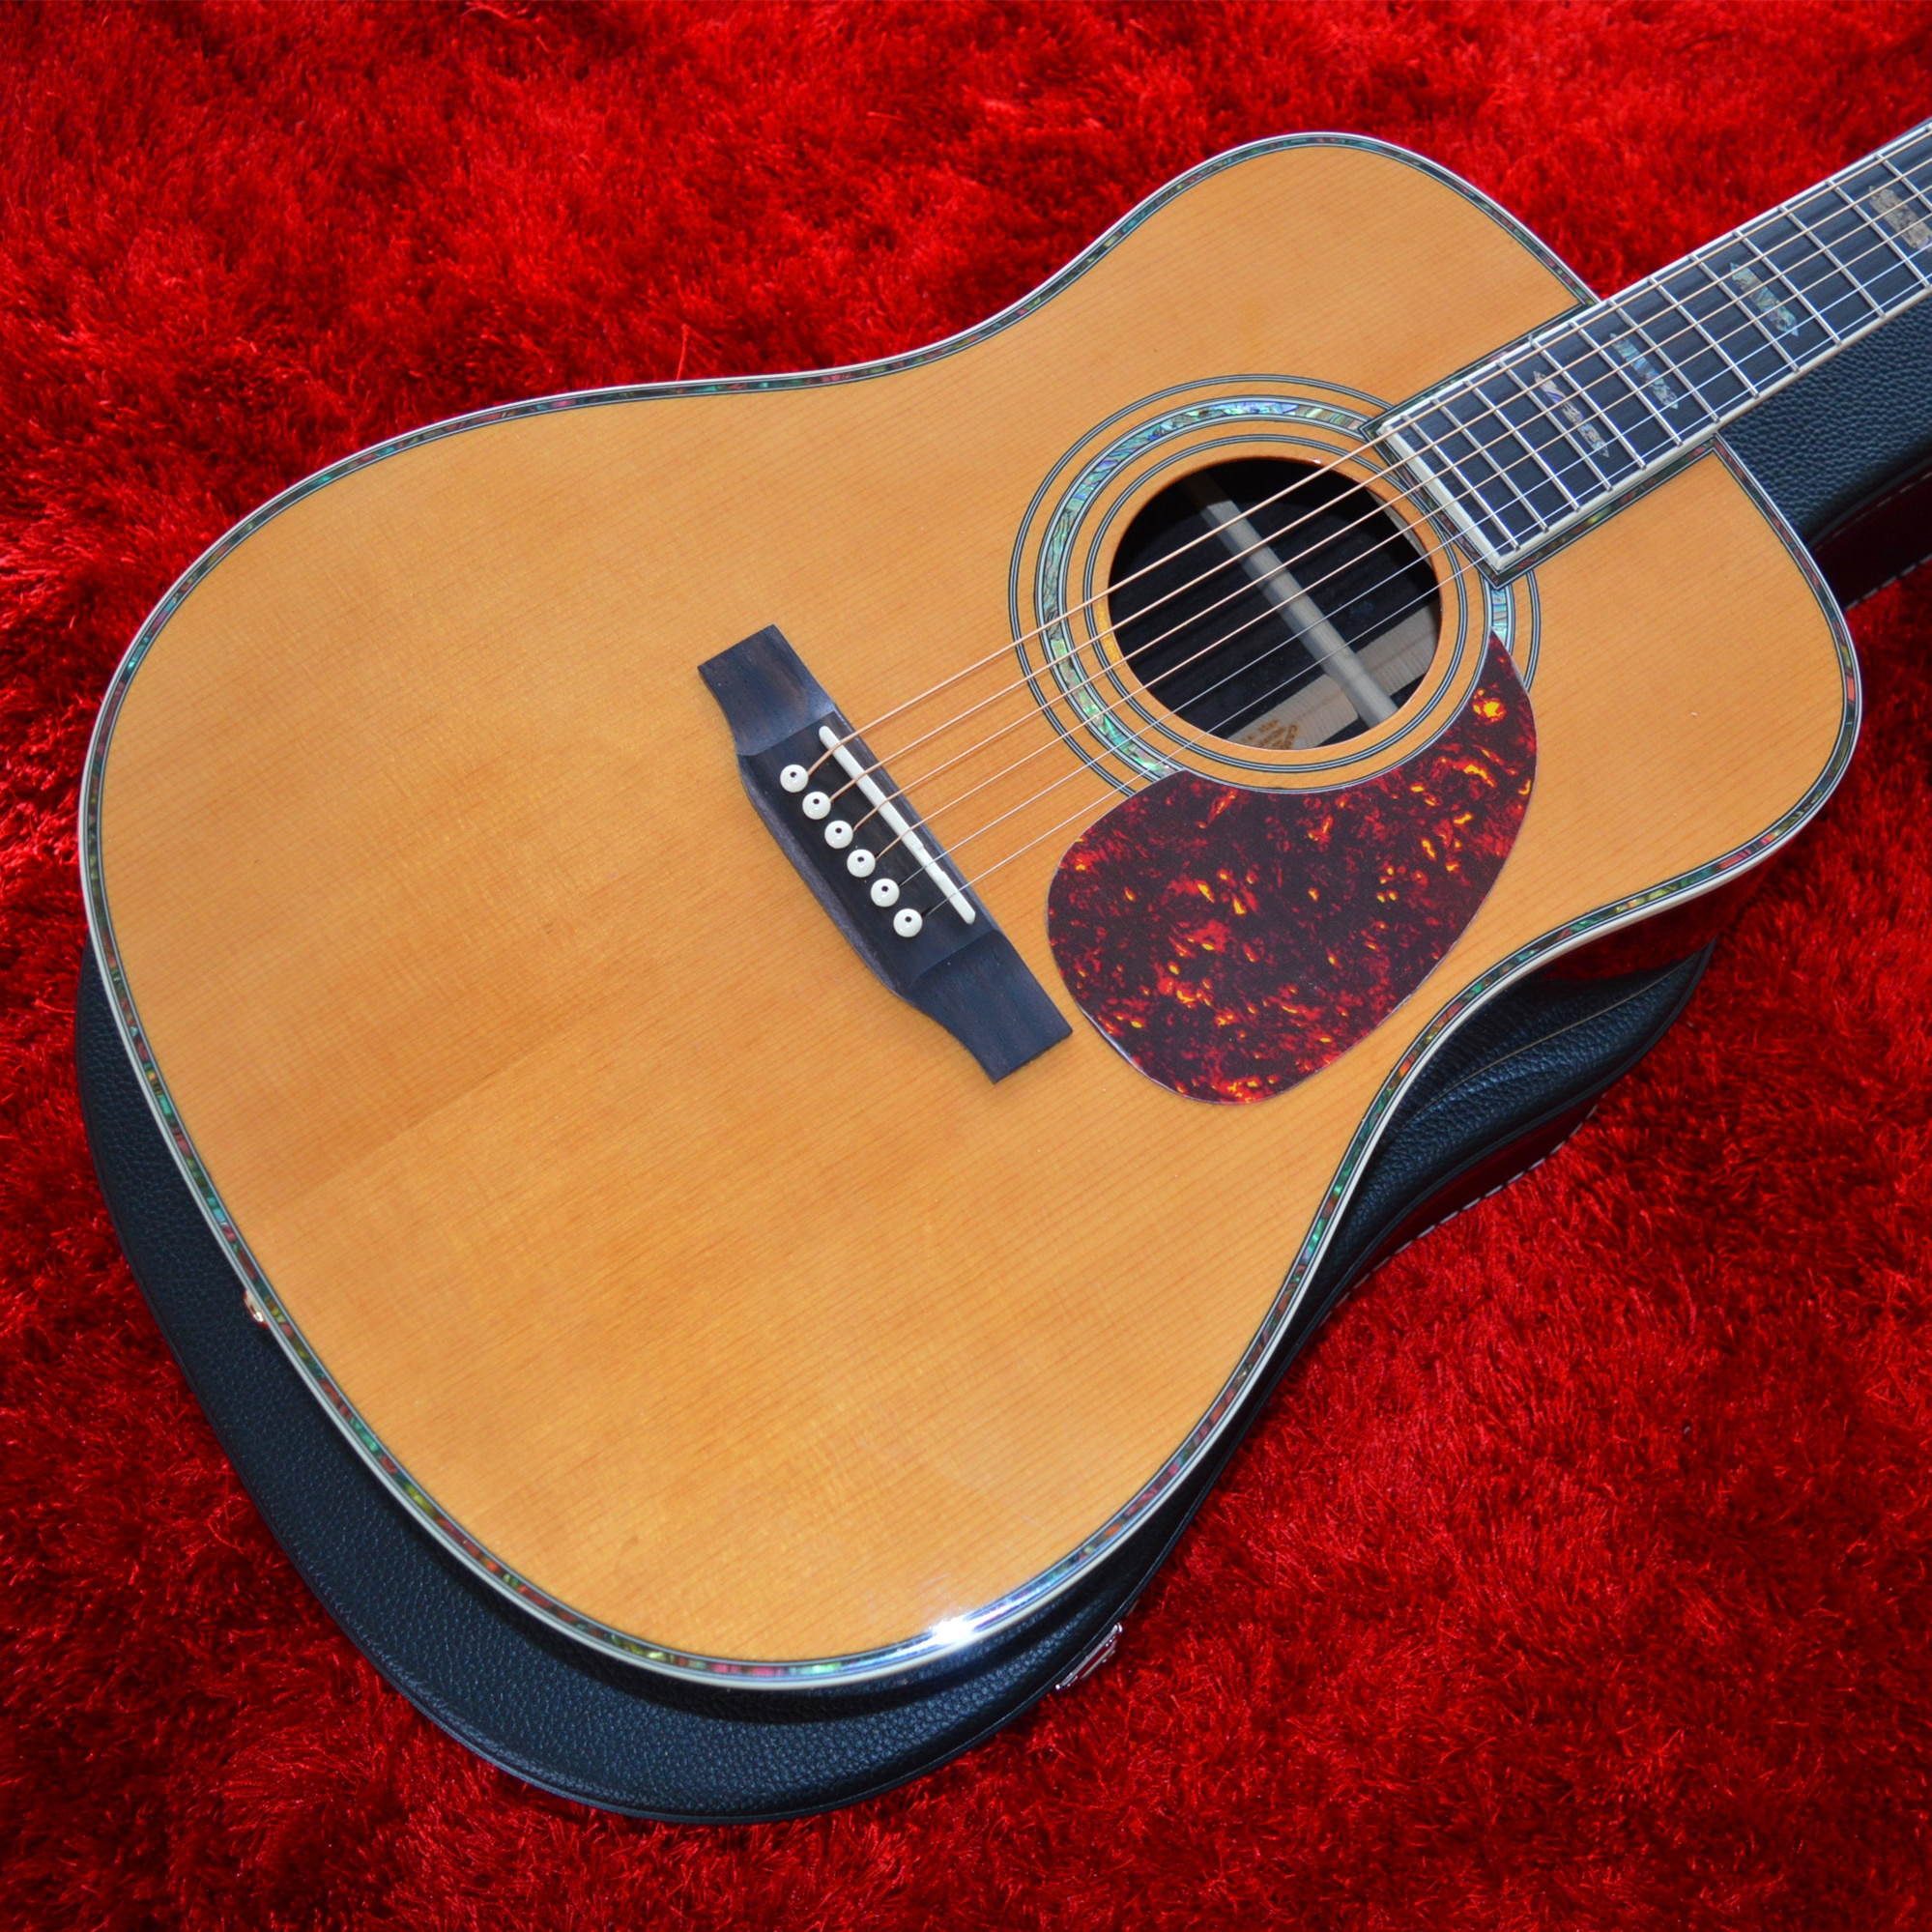 Professional 41 Inches D Style Solid Cedar Top Acoustic Guitar with Rosewood Back and Sides